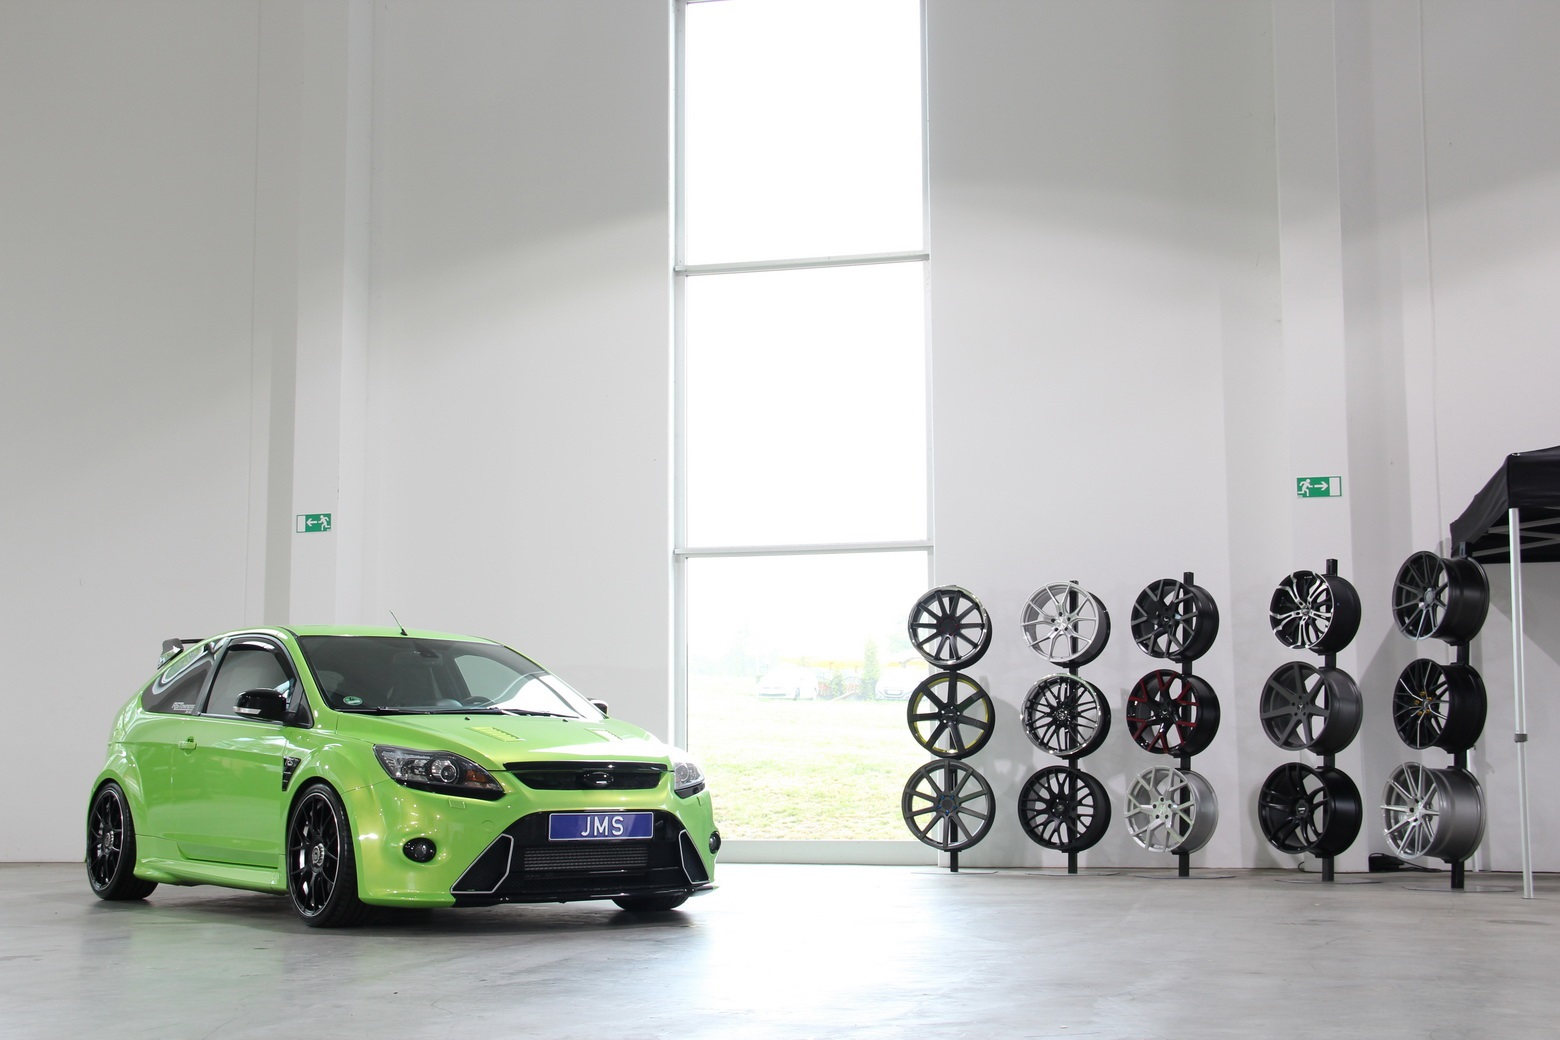 Ford_Focus_RS_JMS_0002